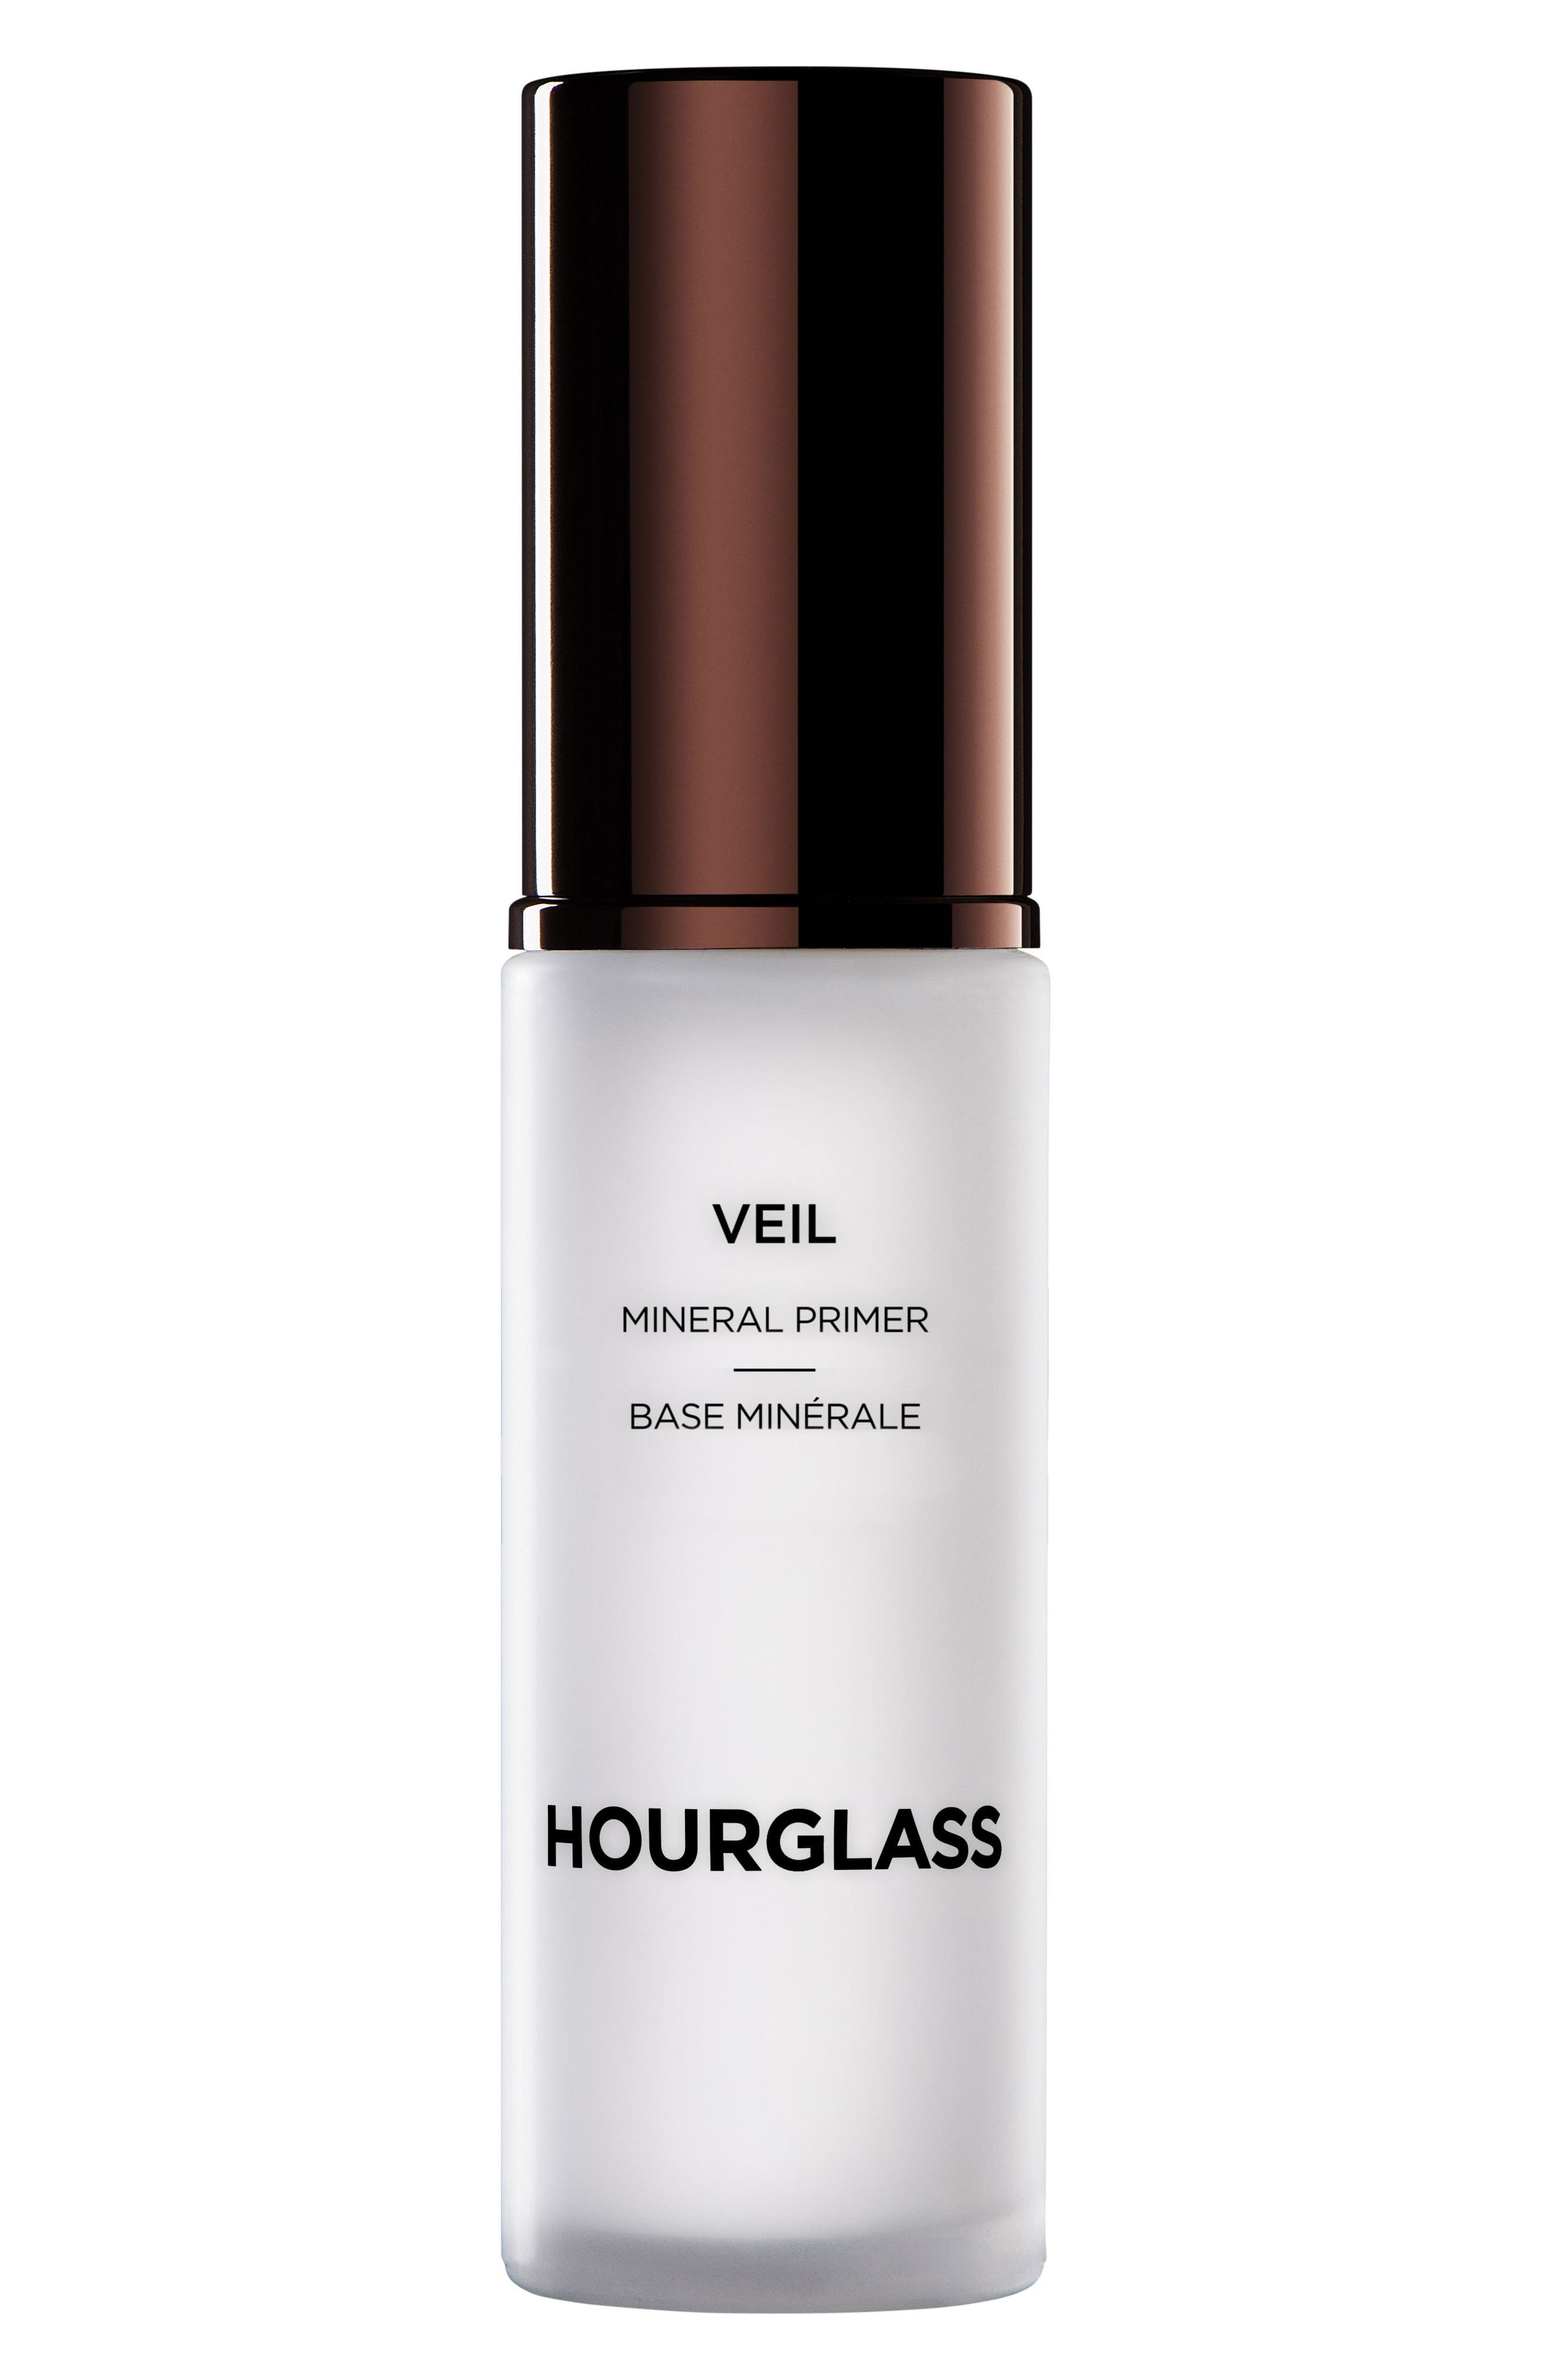 HOURGLASS Veil Mineral Primer